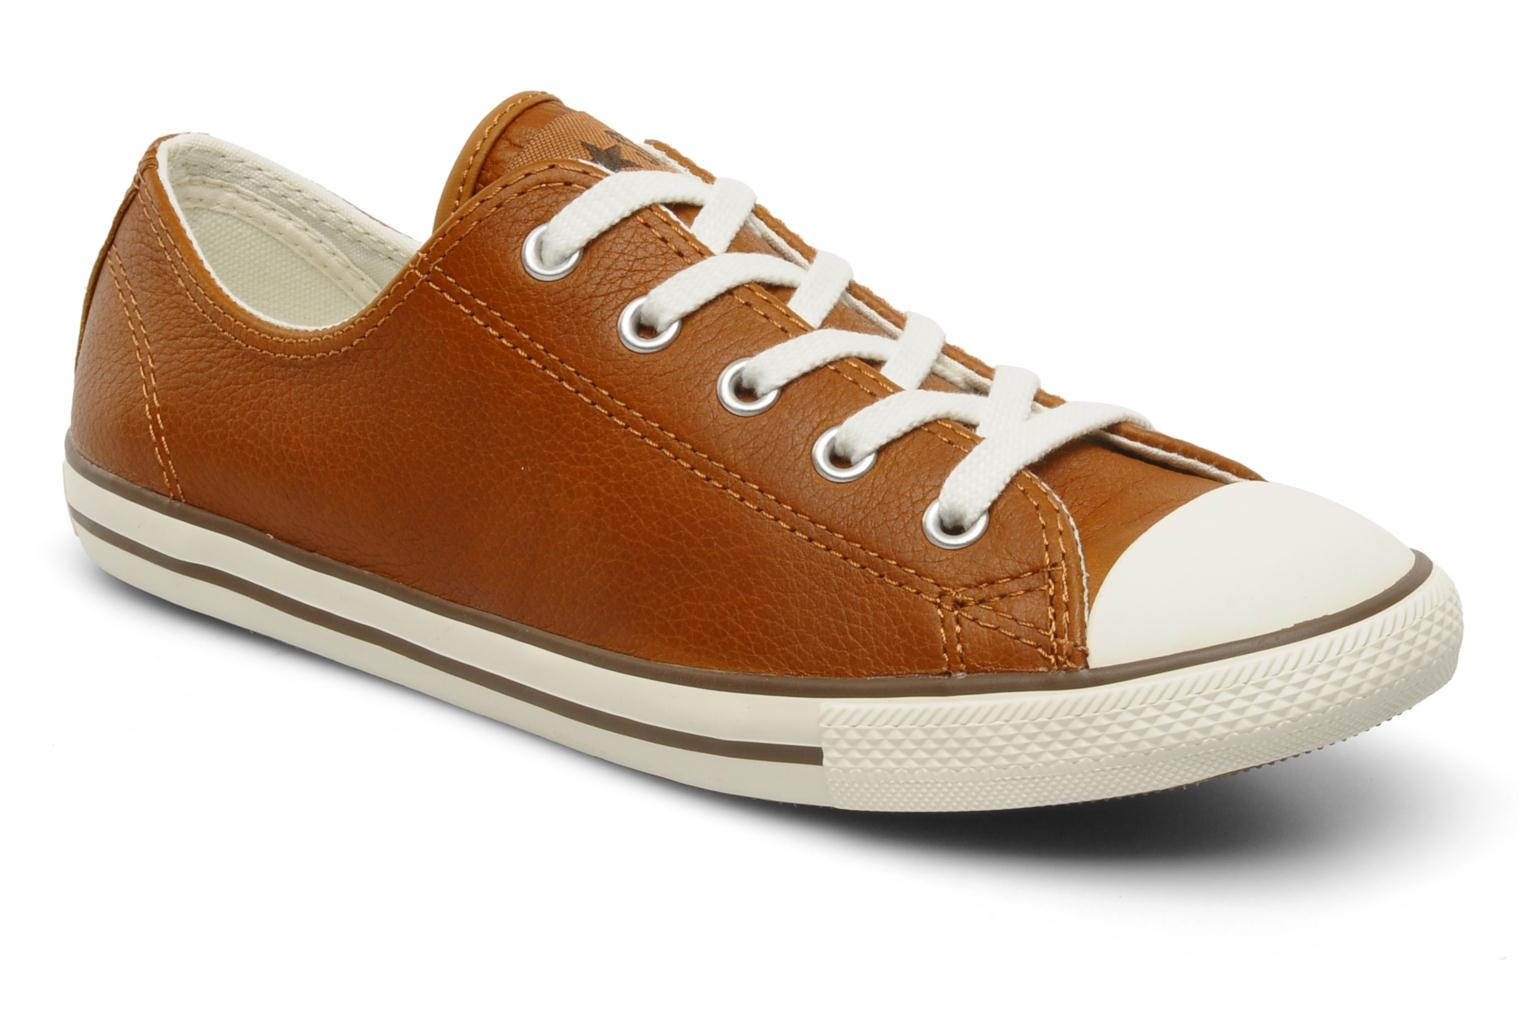 Chaussures Converse Dainty marron GUO785